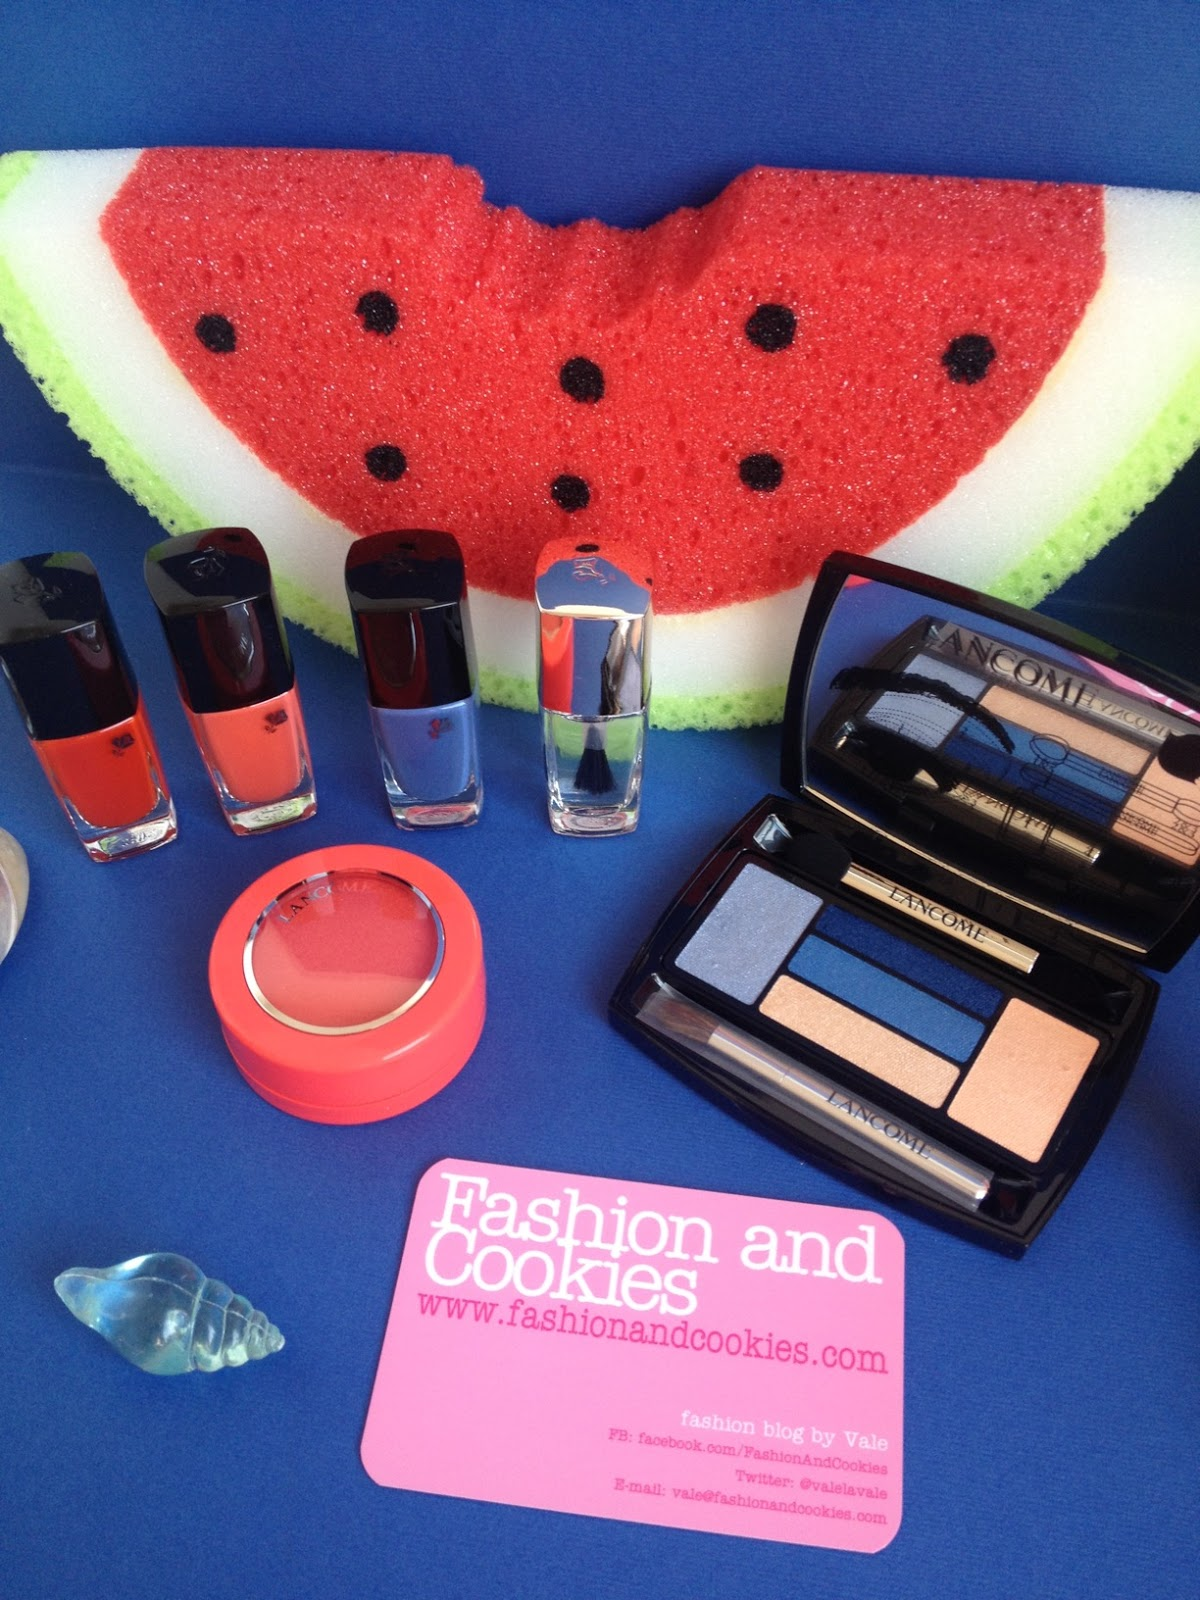 Lancome French Riviere makeup 2015 summer collection on Fashion and Cookies fashion blog